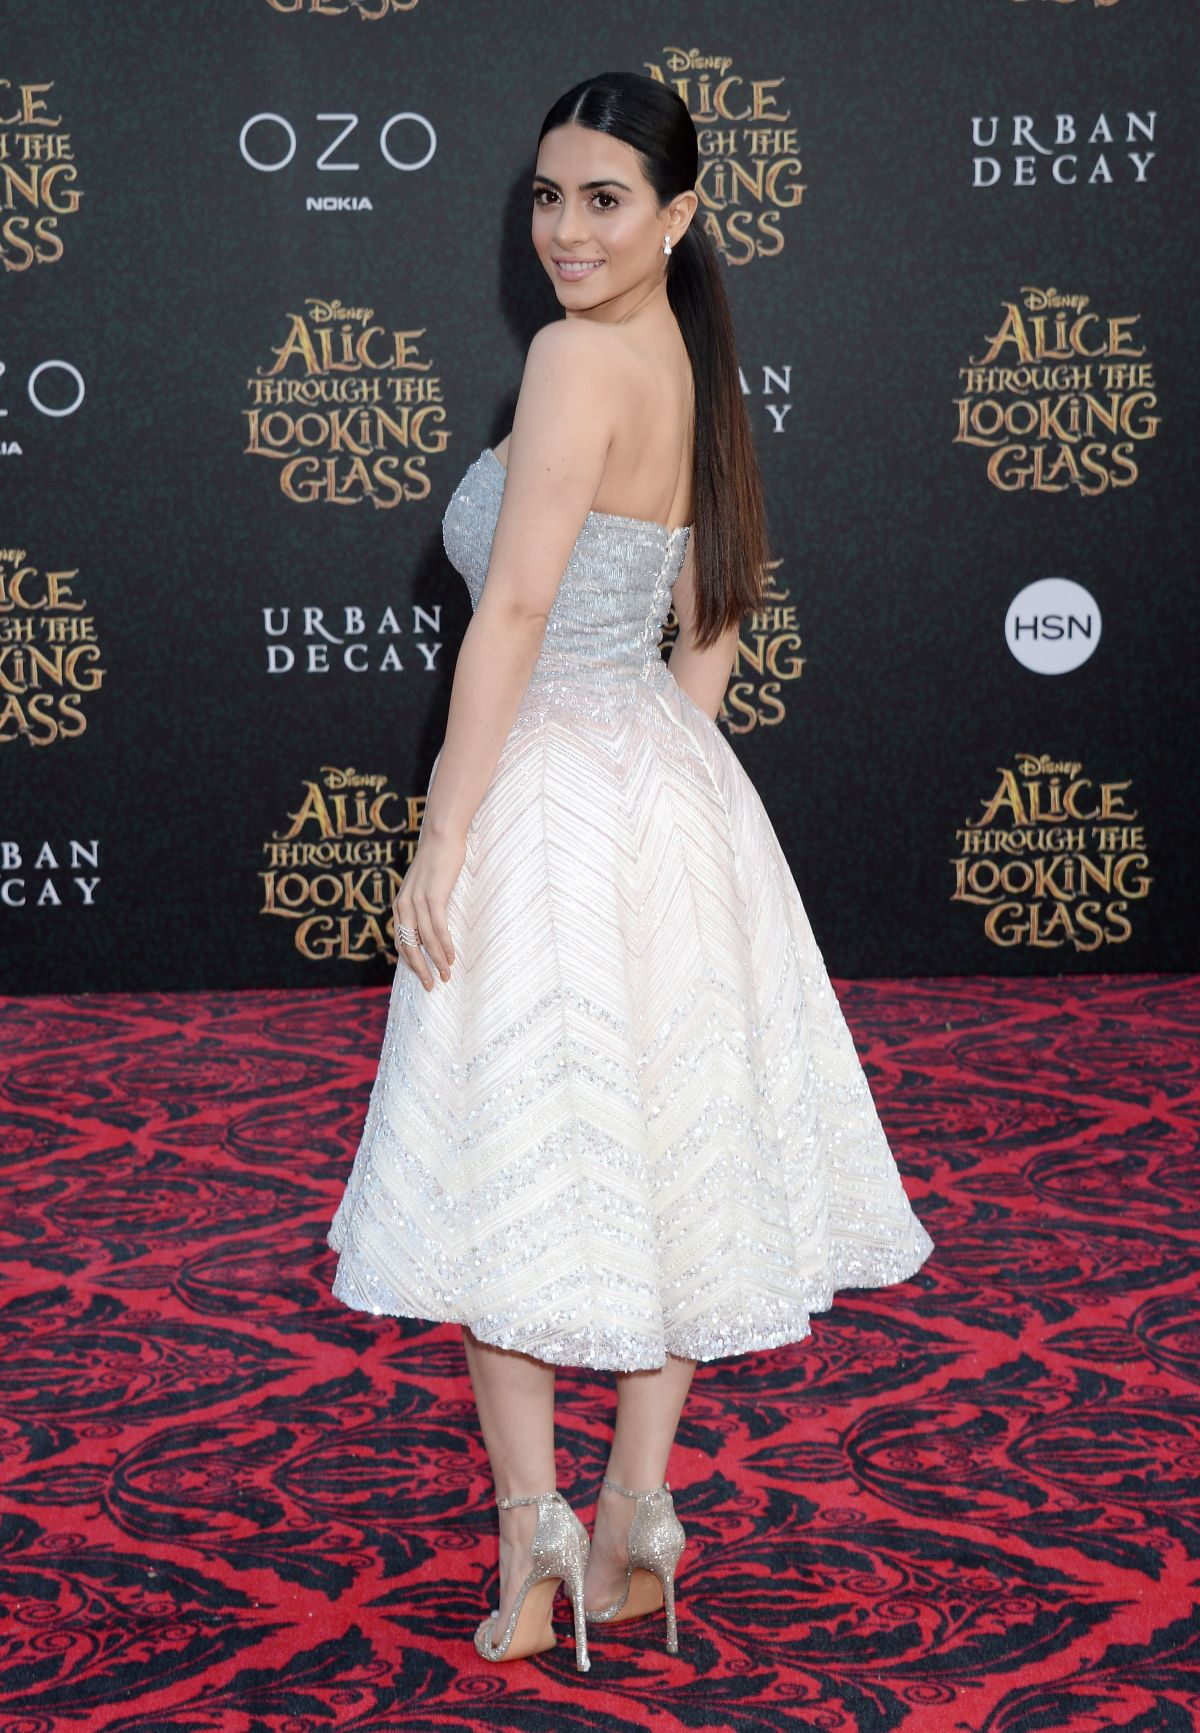 EMERAUDE TOUBIA at Alice Through the Looking Glass Premiere in Hollywood 05/23/2016